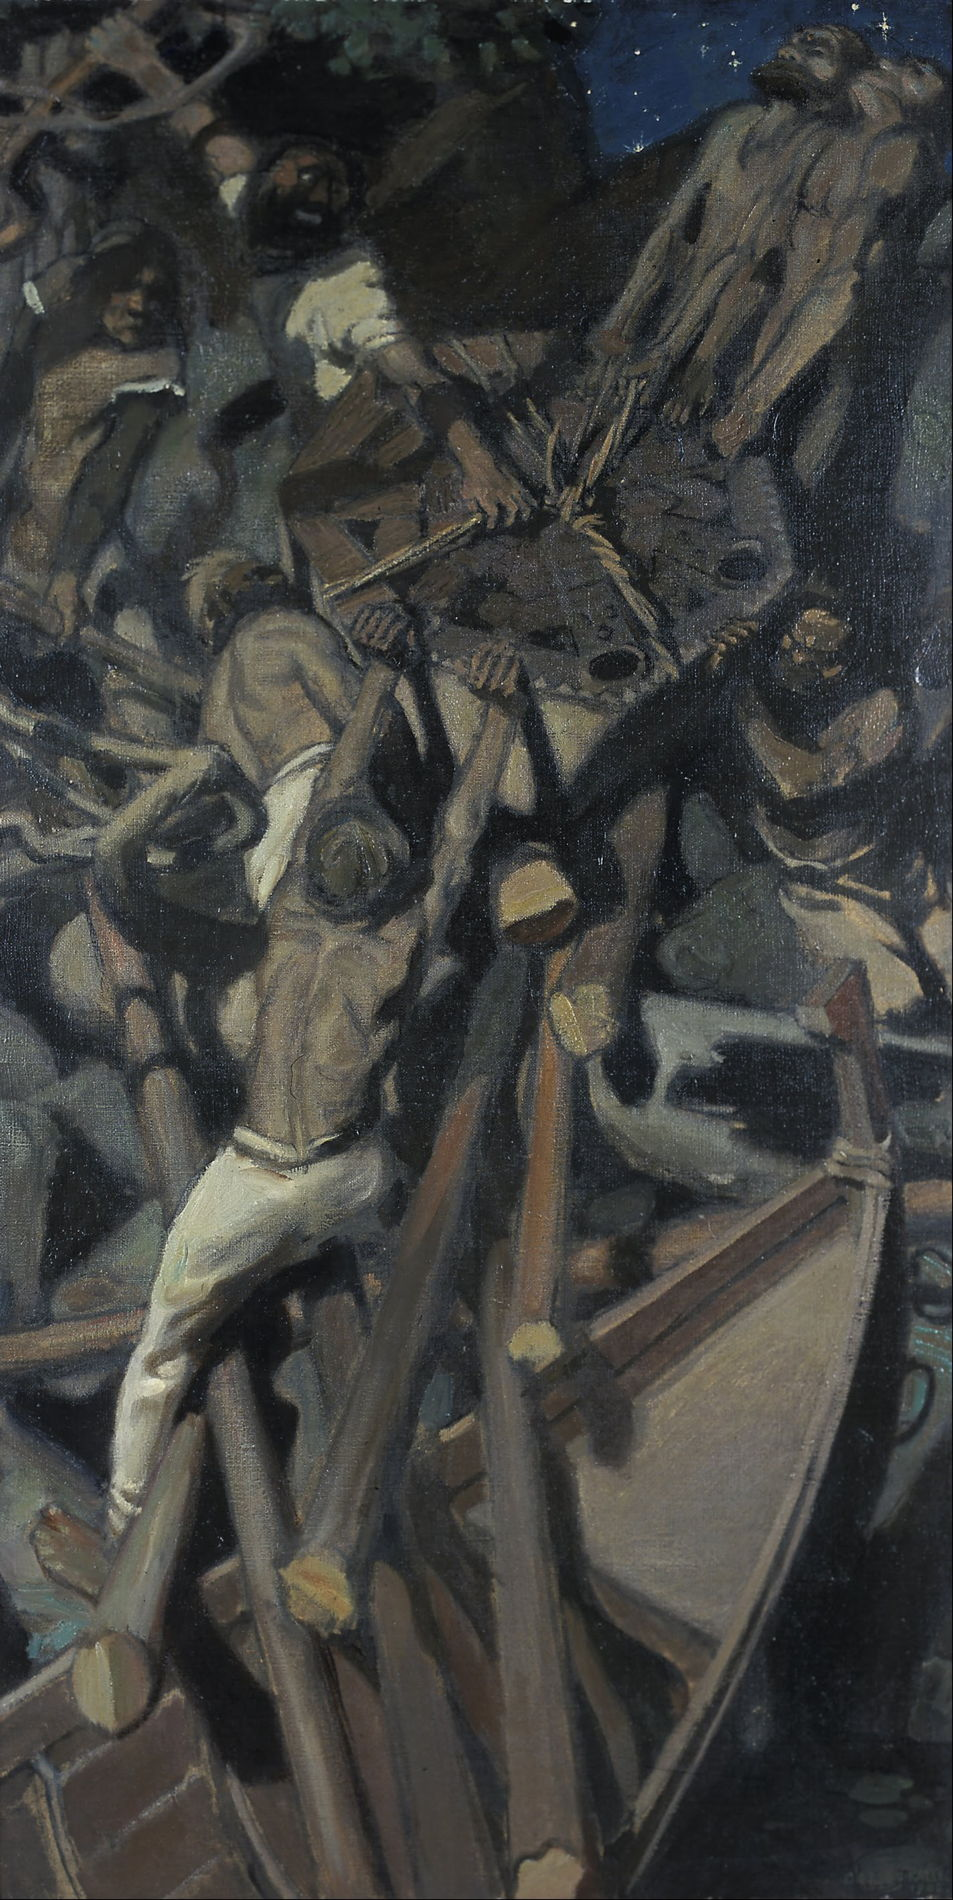 The Story In Paintings Kalevala Finland S Epic 2 The